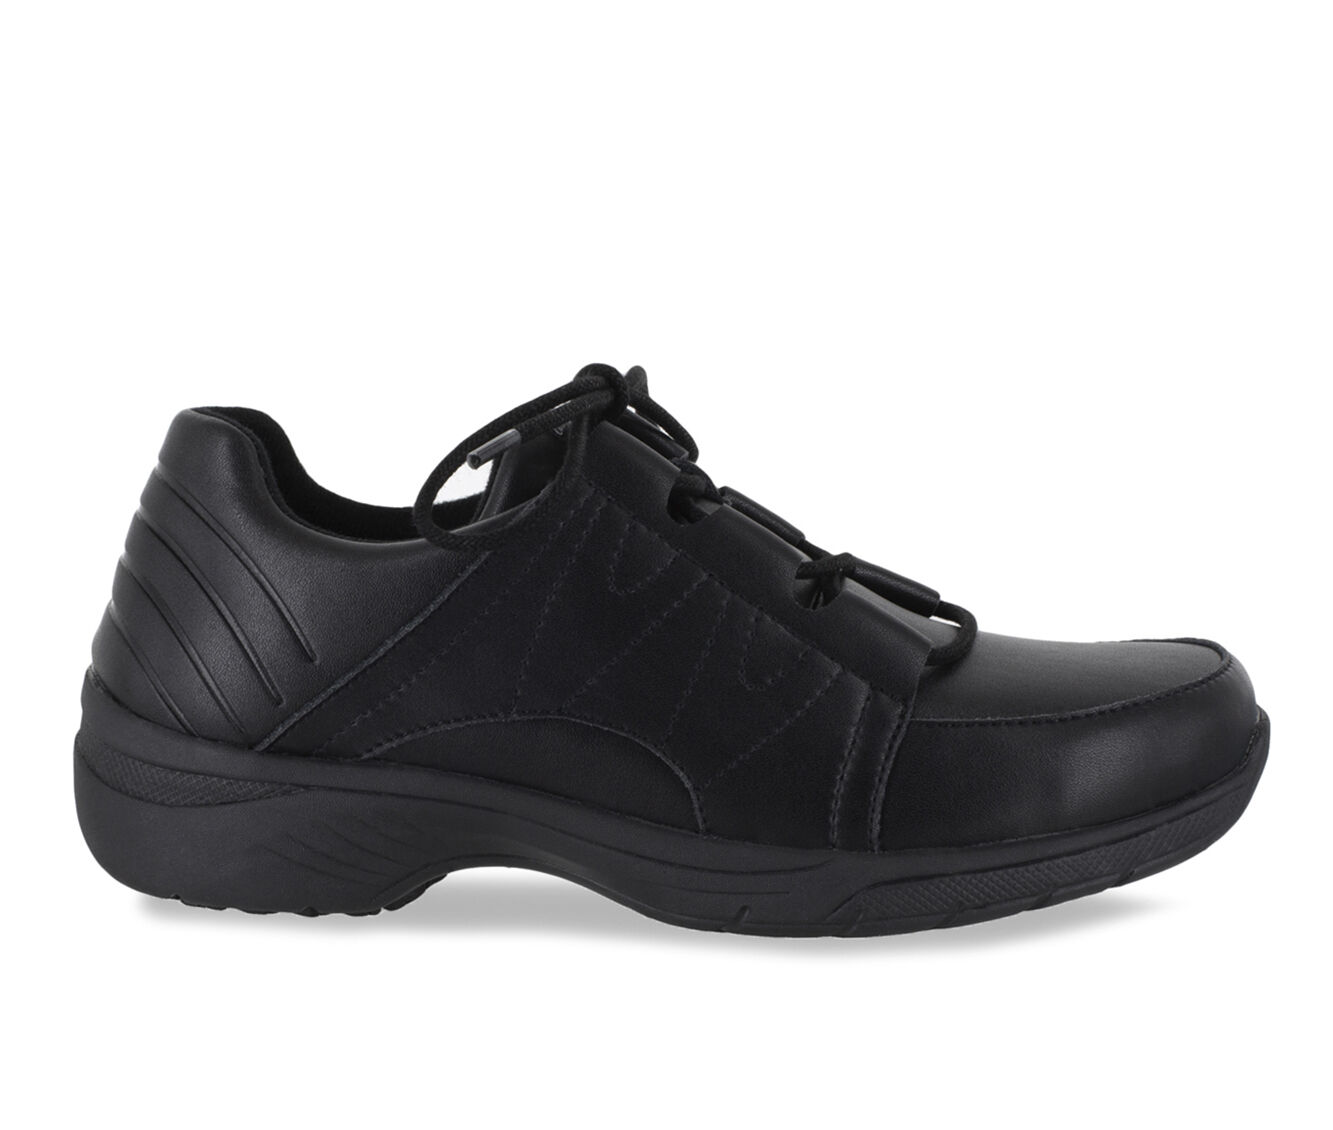 Women's Easy Works by Easy Street Pepper Safety Shoes BLACK LEATHER